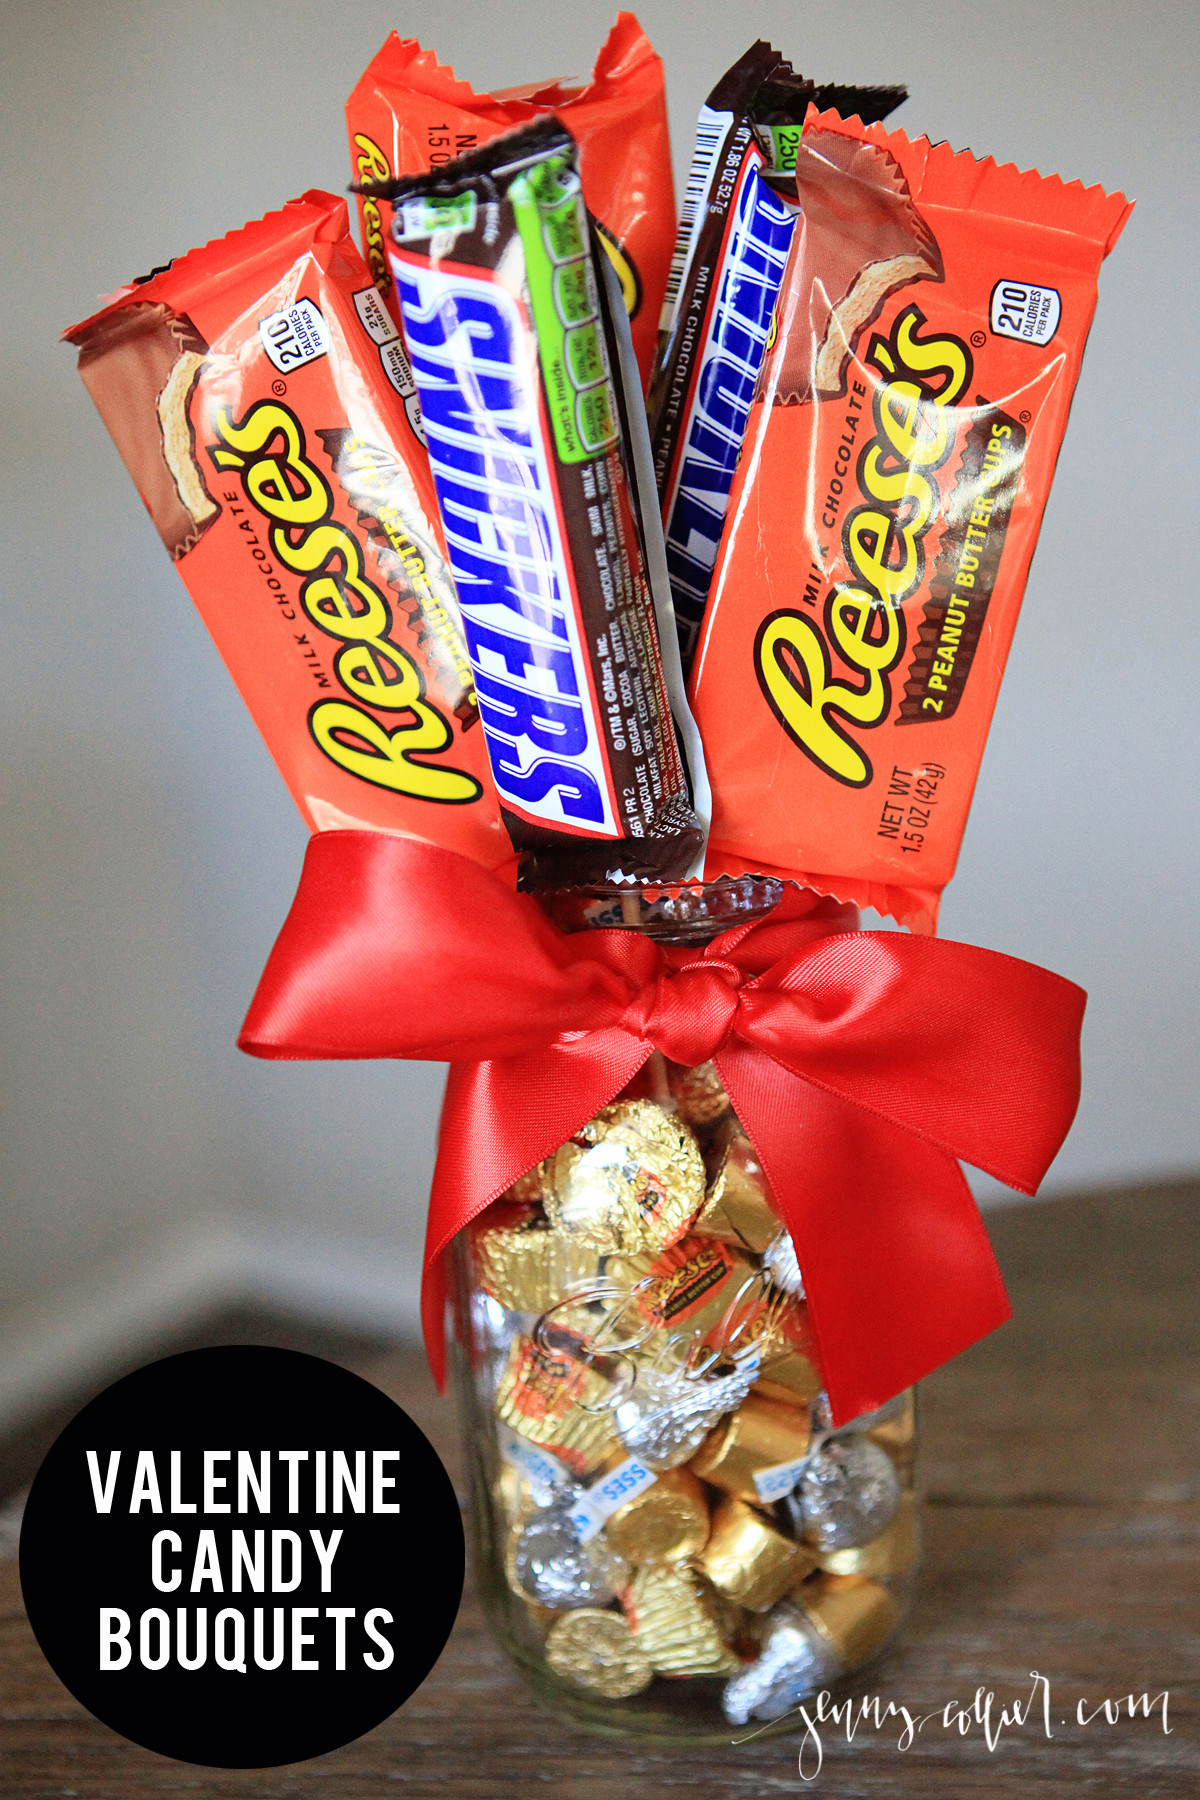 Valentines Candy Gift Ideas  Valentine Candy Bouquets jenny collier blog